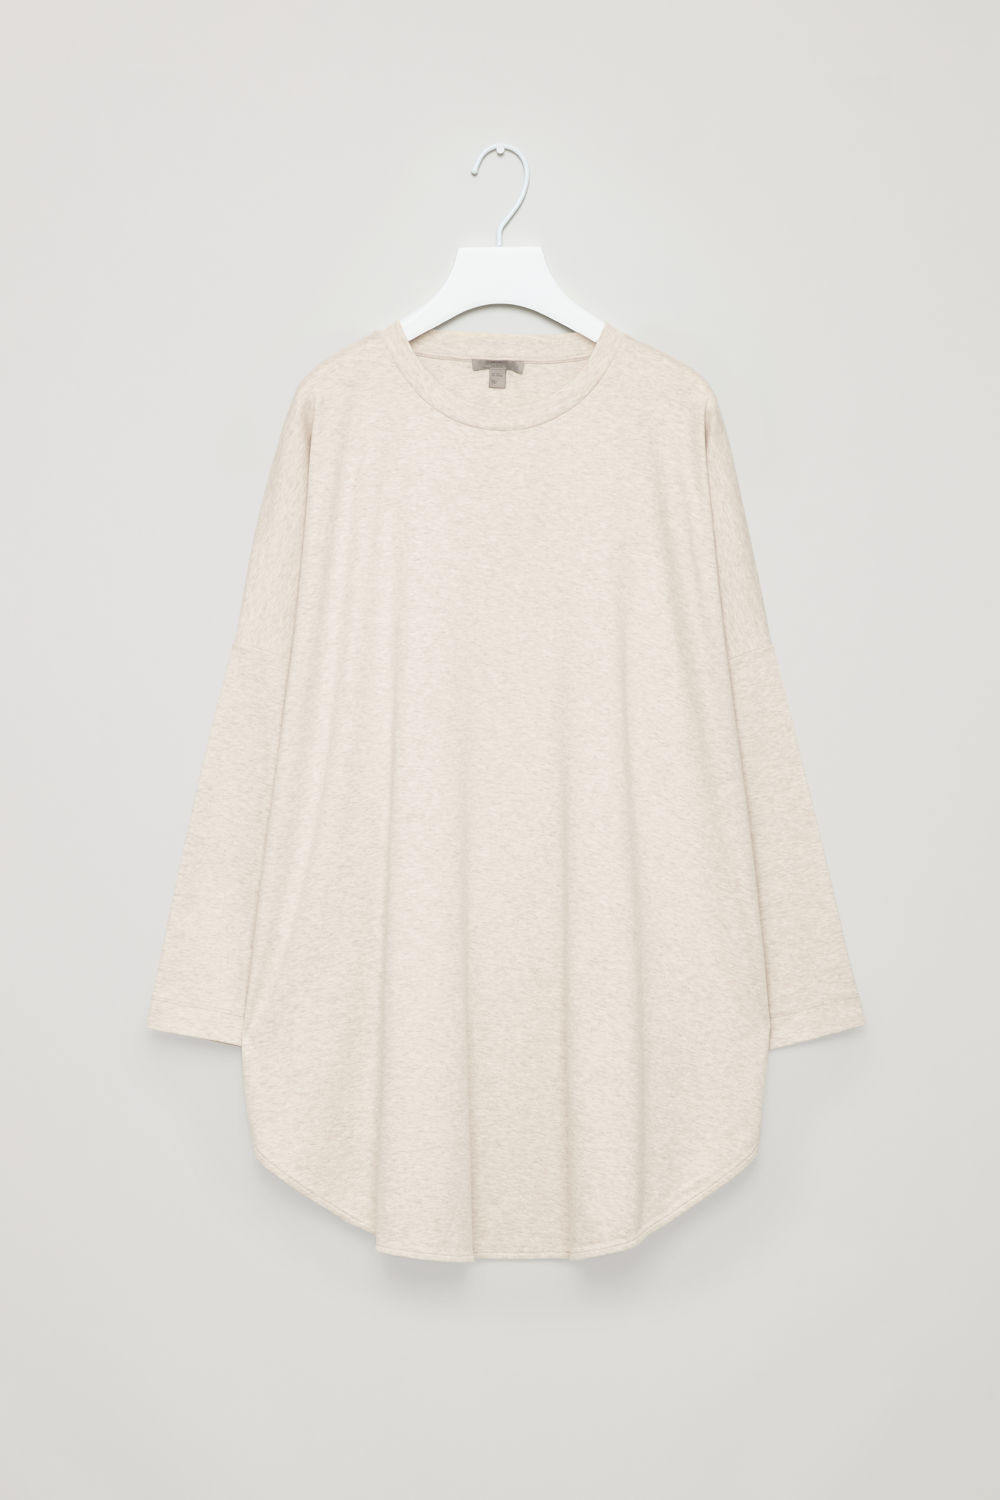 COCOON JERSEY TOP